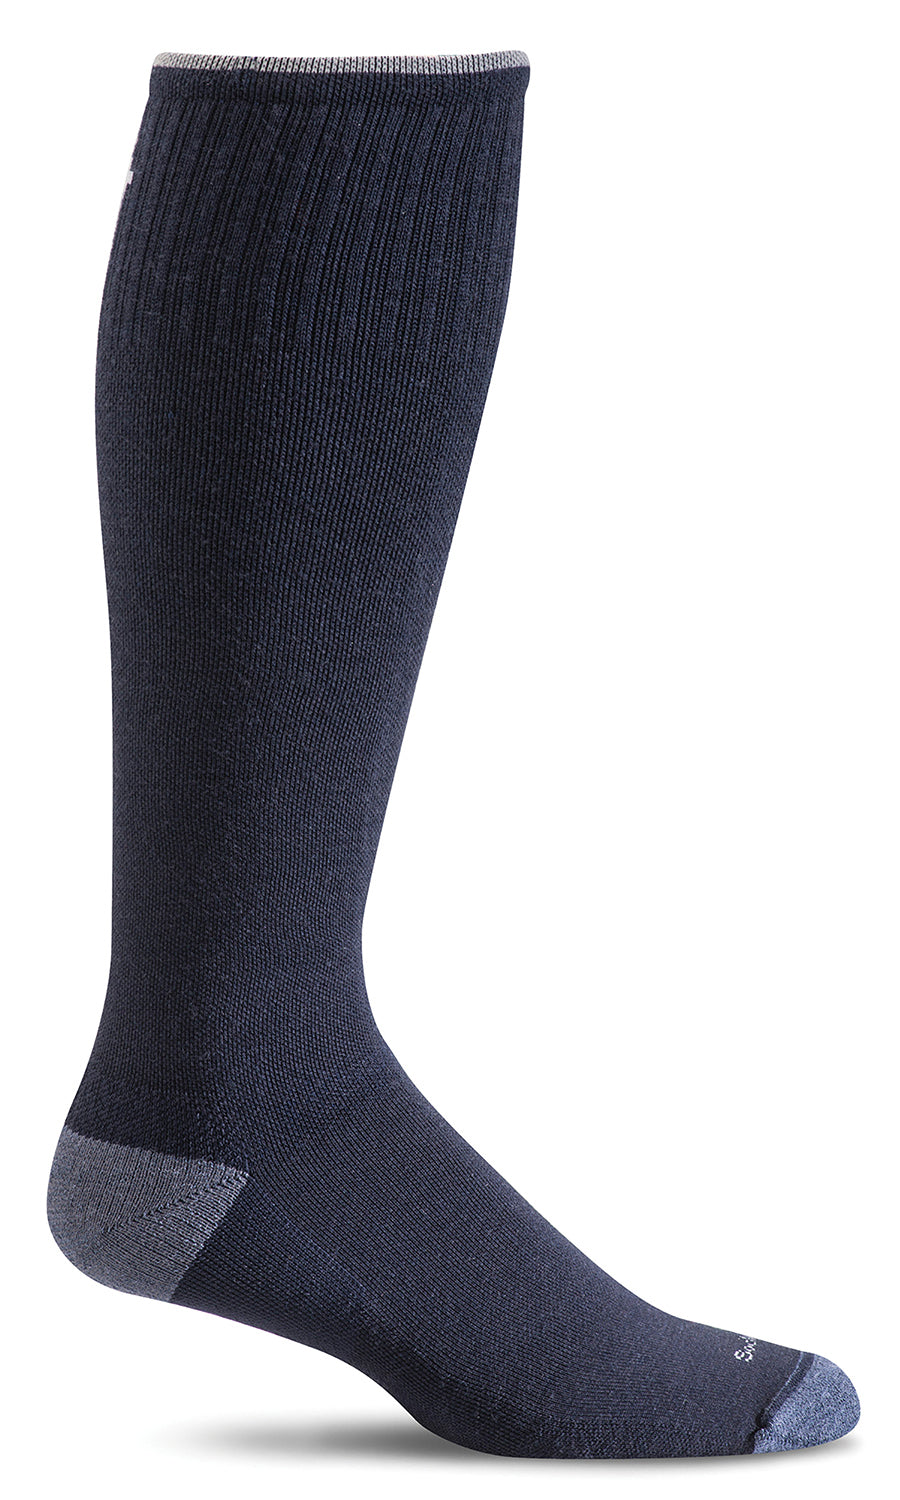 Elevation Knee-High - Navy Firm Compression (20-30mmHG)